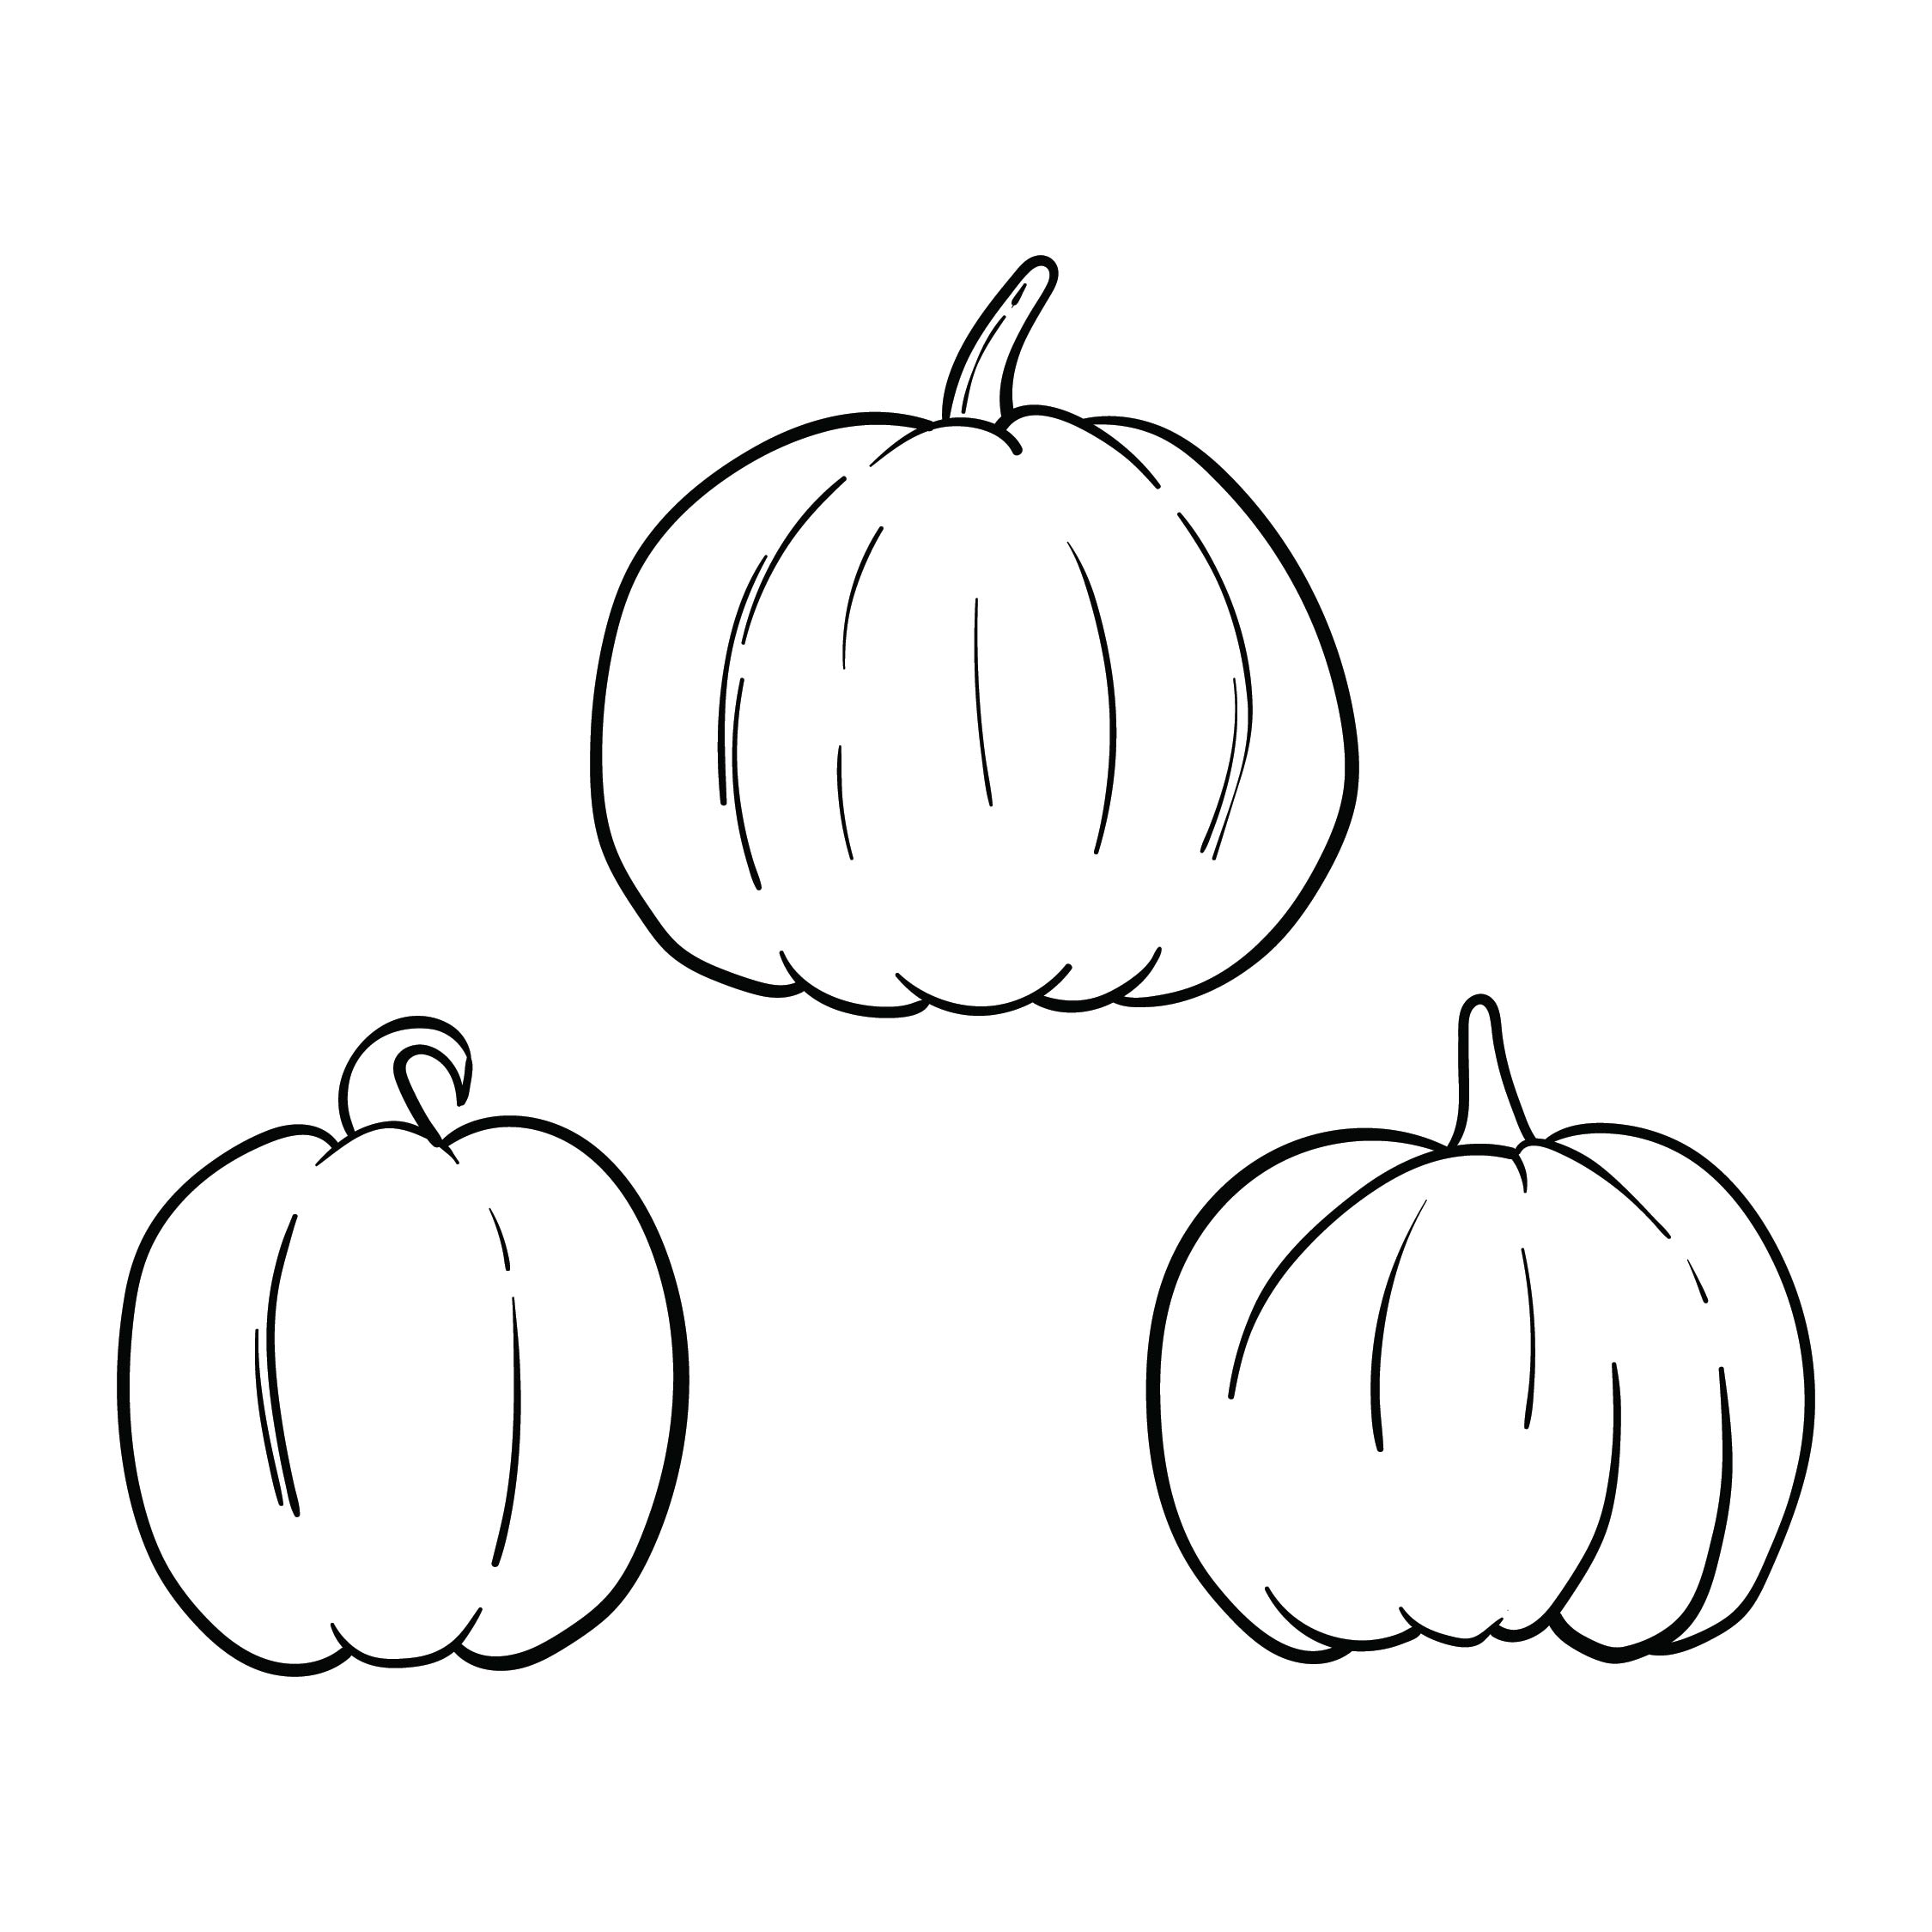 5 best images of free halloween printable pumpkins outline